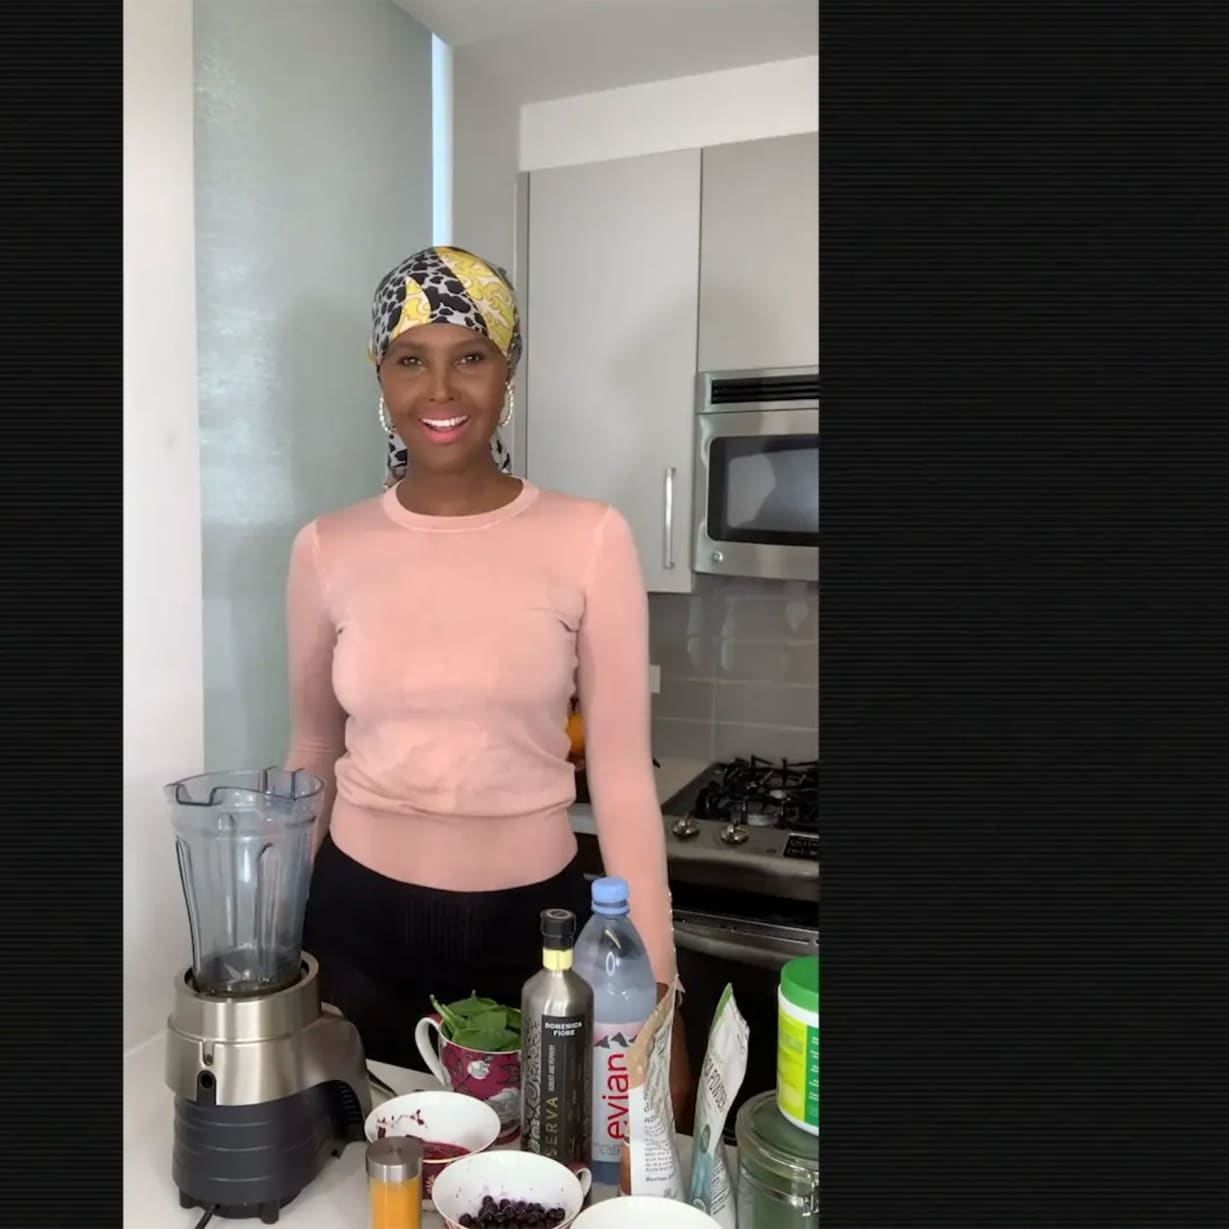 A woman in a kitchen next to a blender.